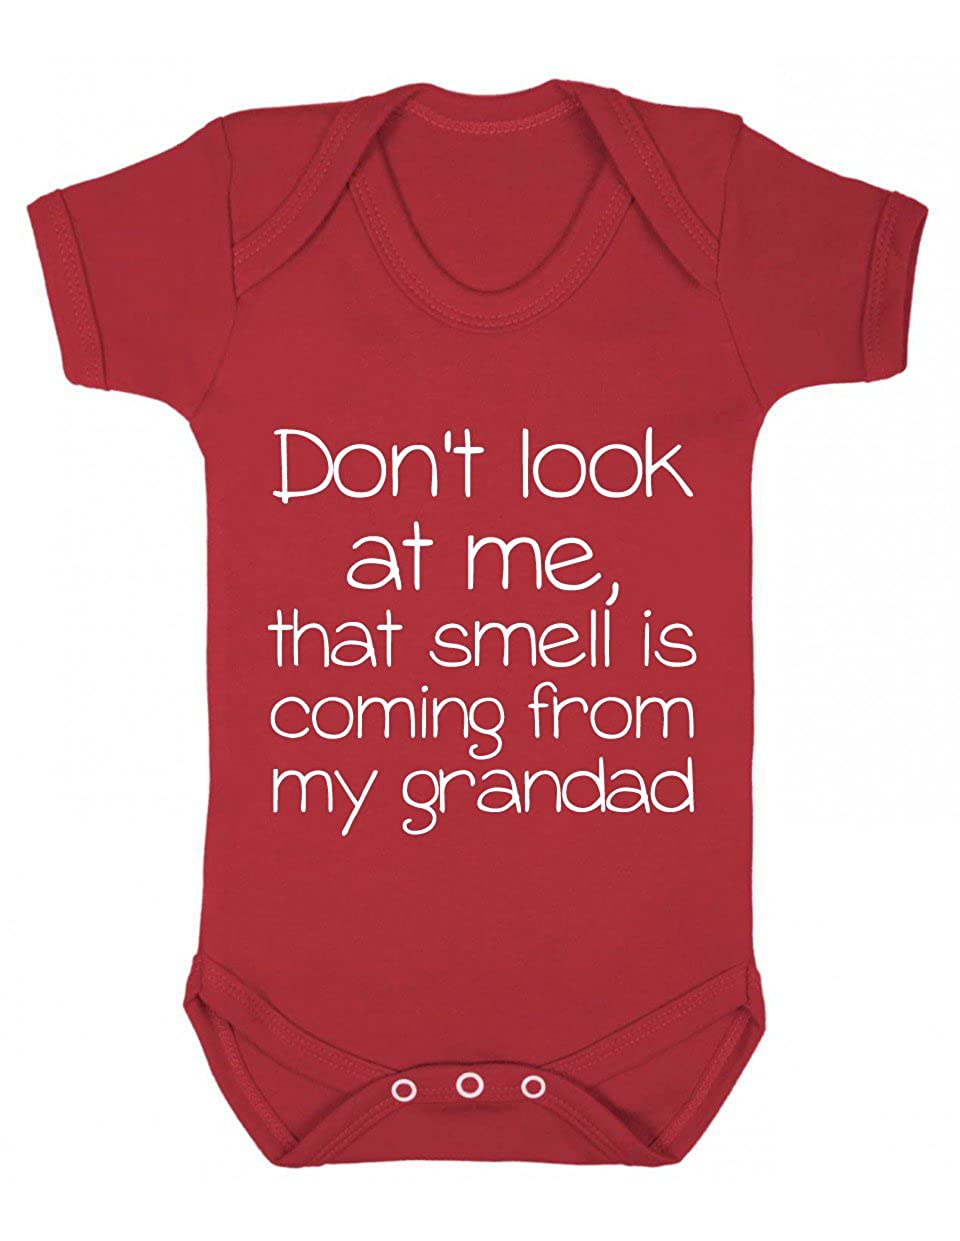 Don't look at me, that smell is coming from my grandad Funny Baby Playsuit Don't look at me BABYBS007